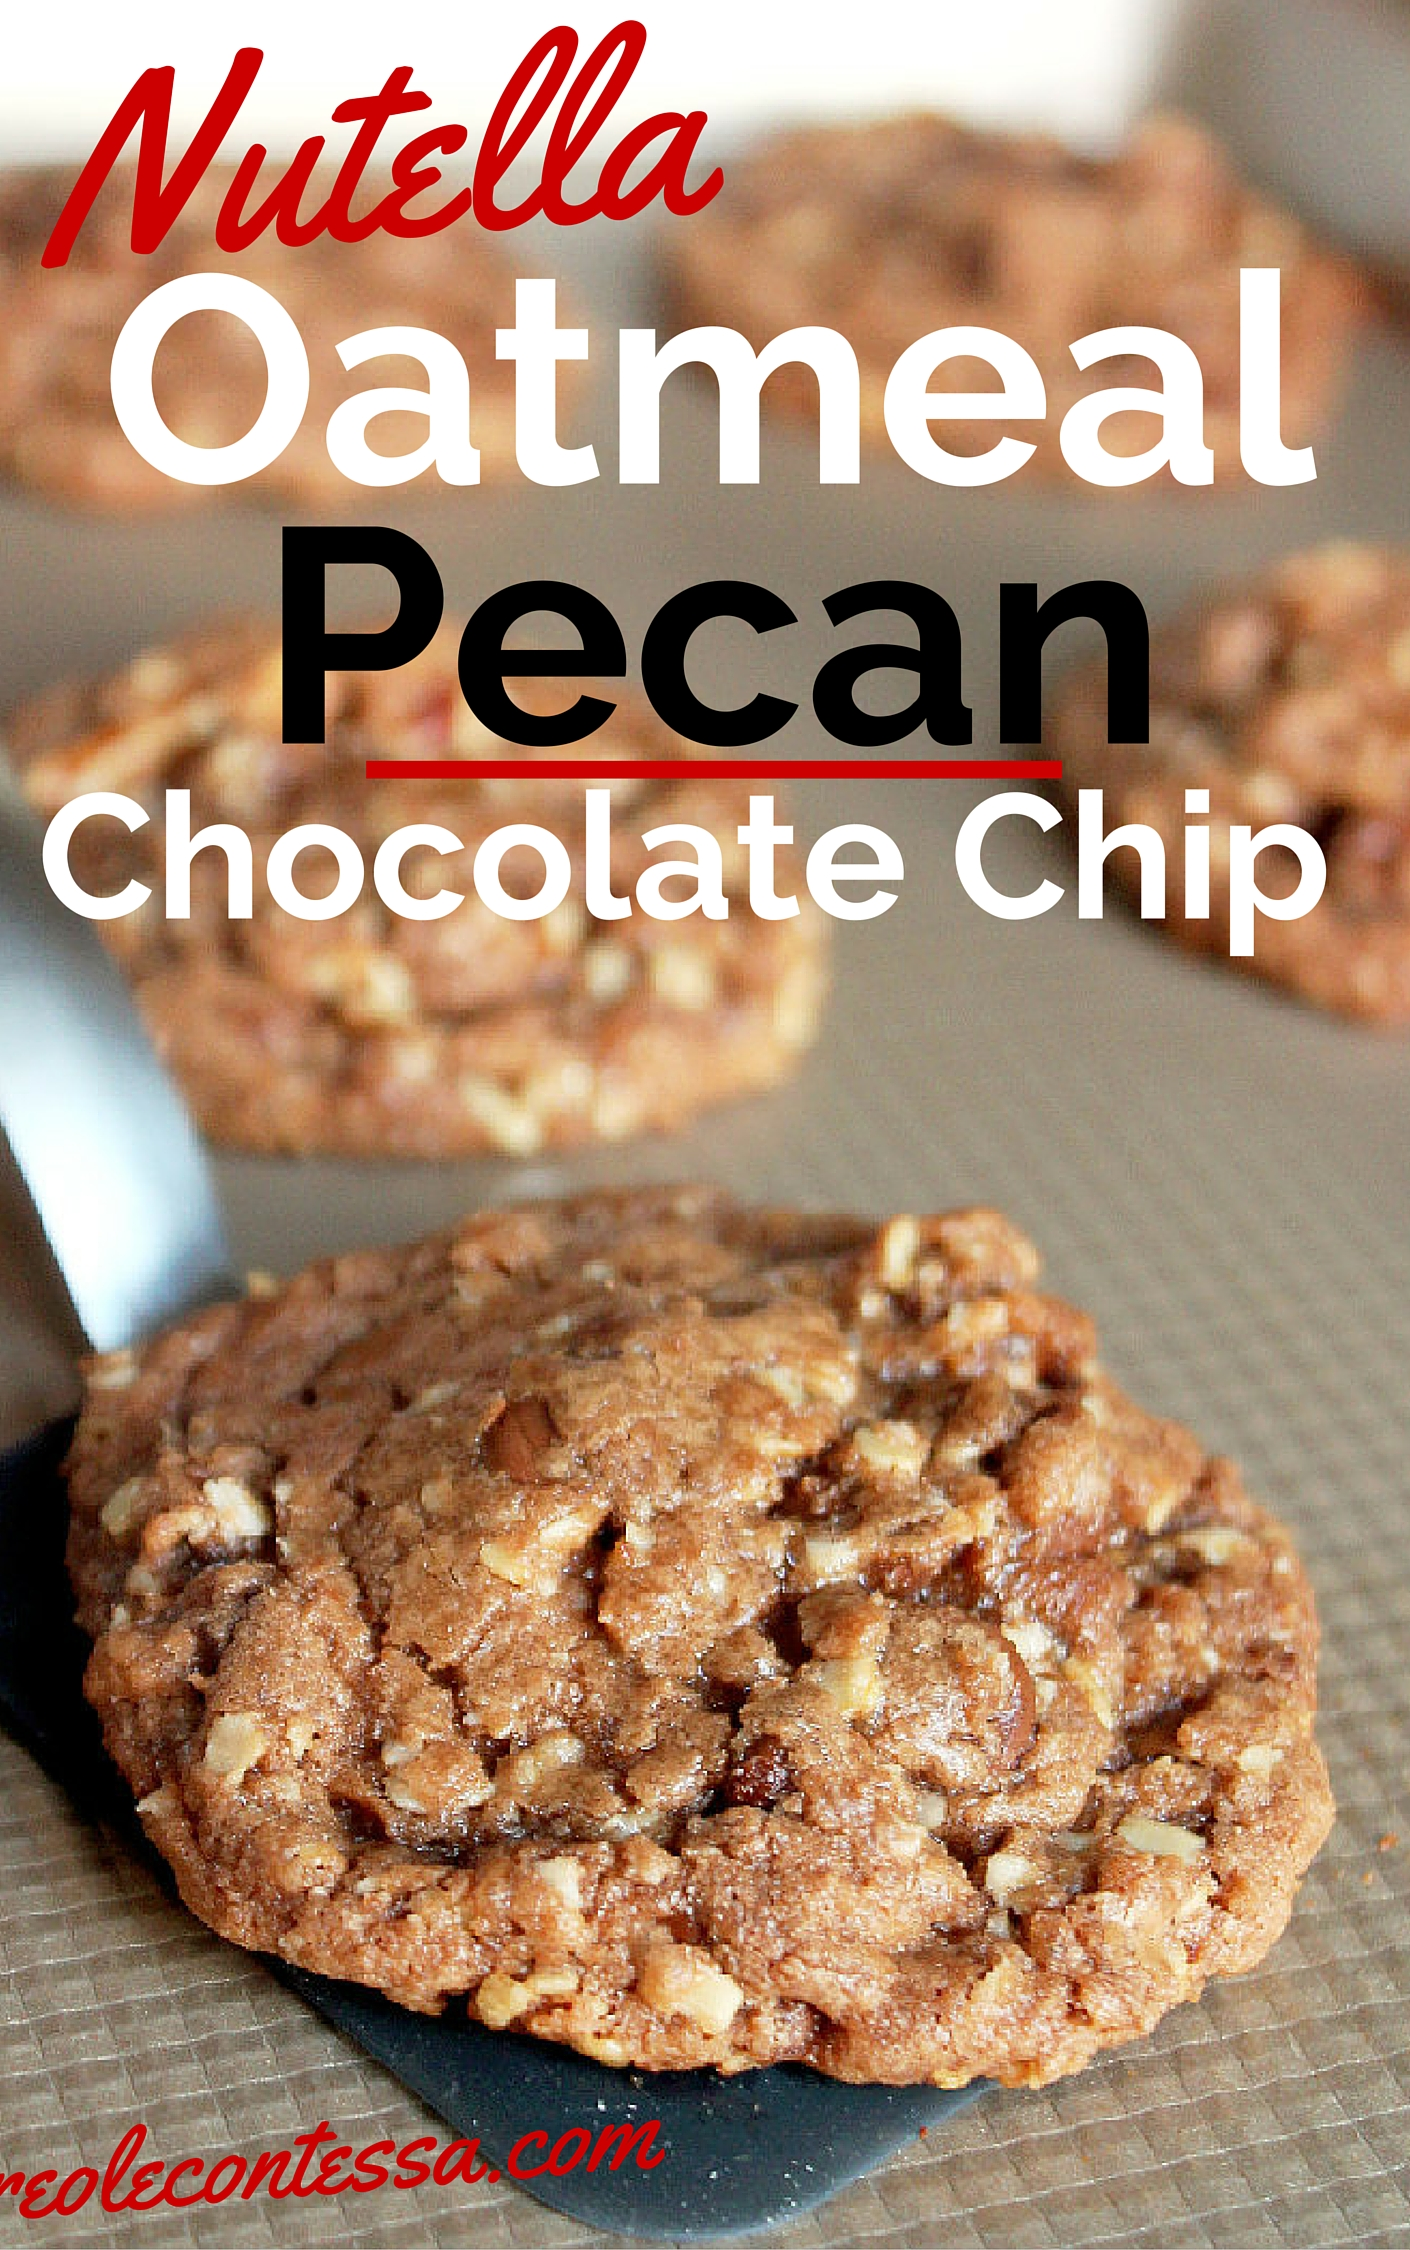 Nutella Oatmeal Pecan Chocolate Chip Cookies-Creole Contessa